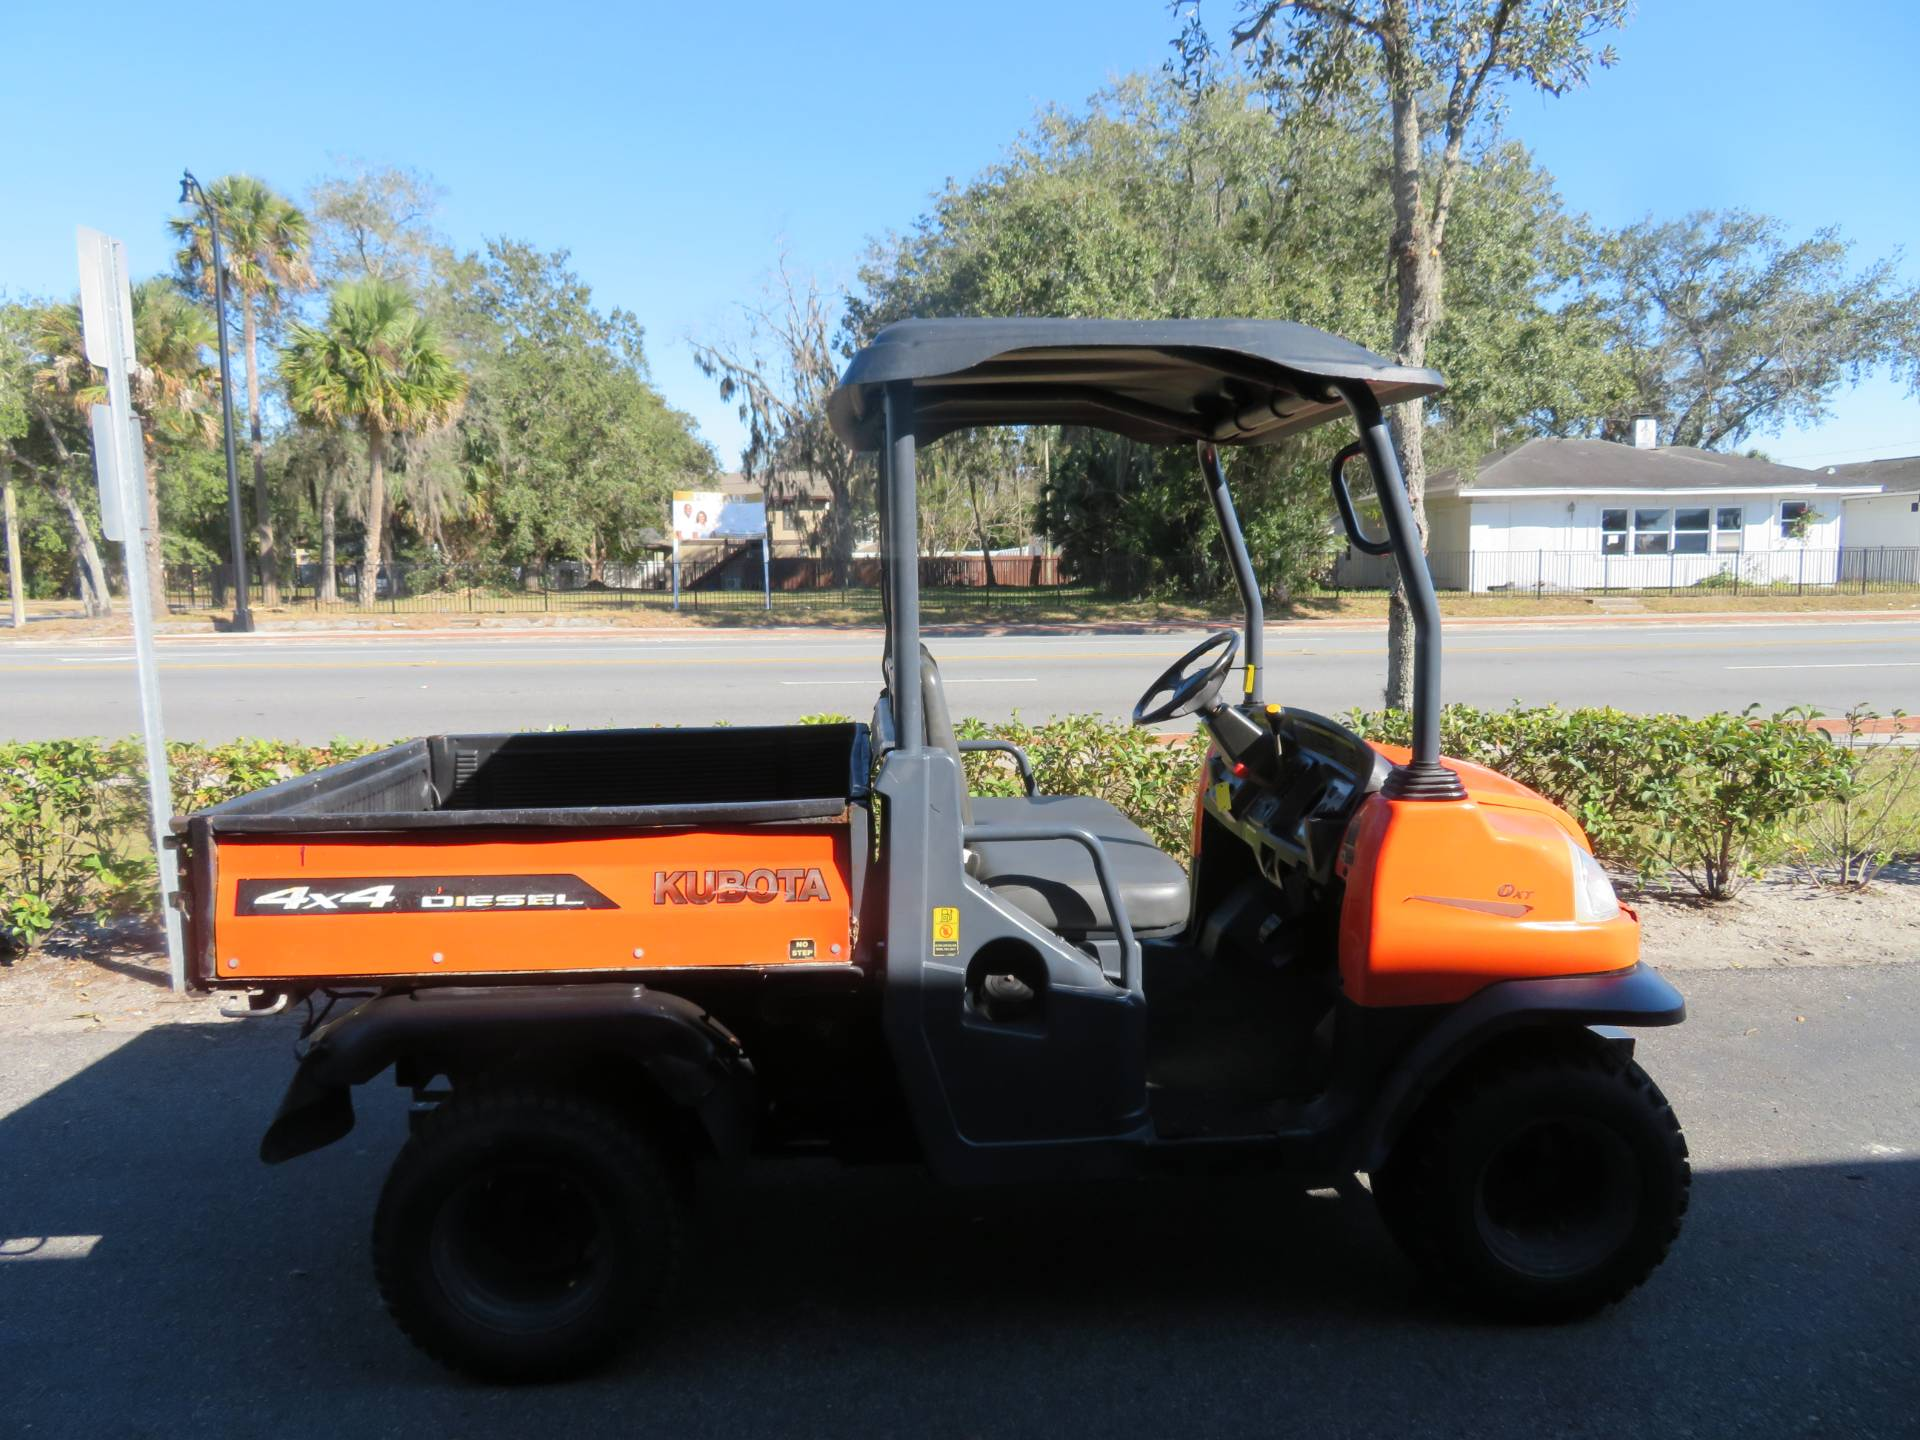 2013 Kubota RTV900XT Utility (Orange) in Sanford, Florida - Photo 1